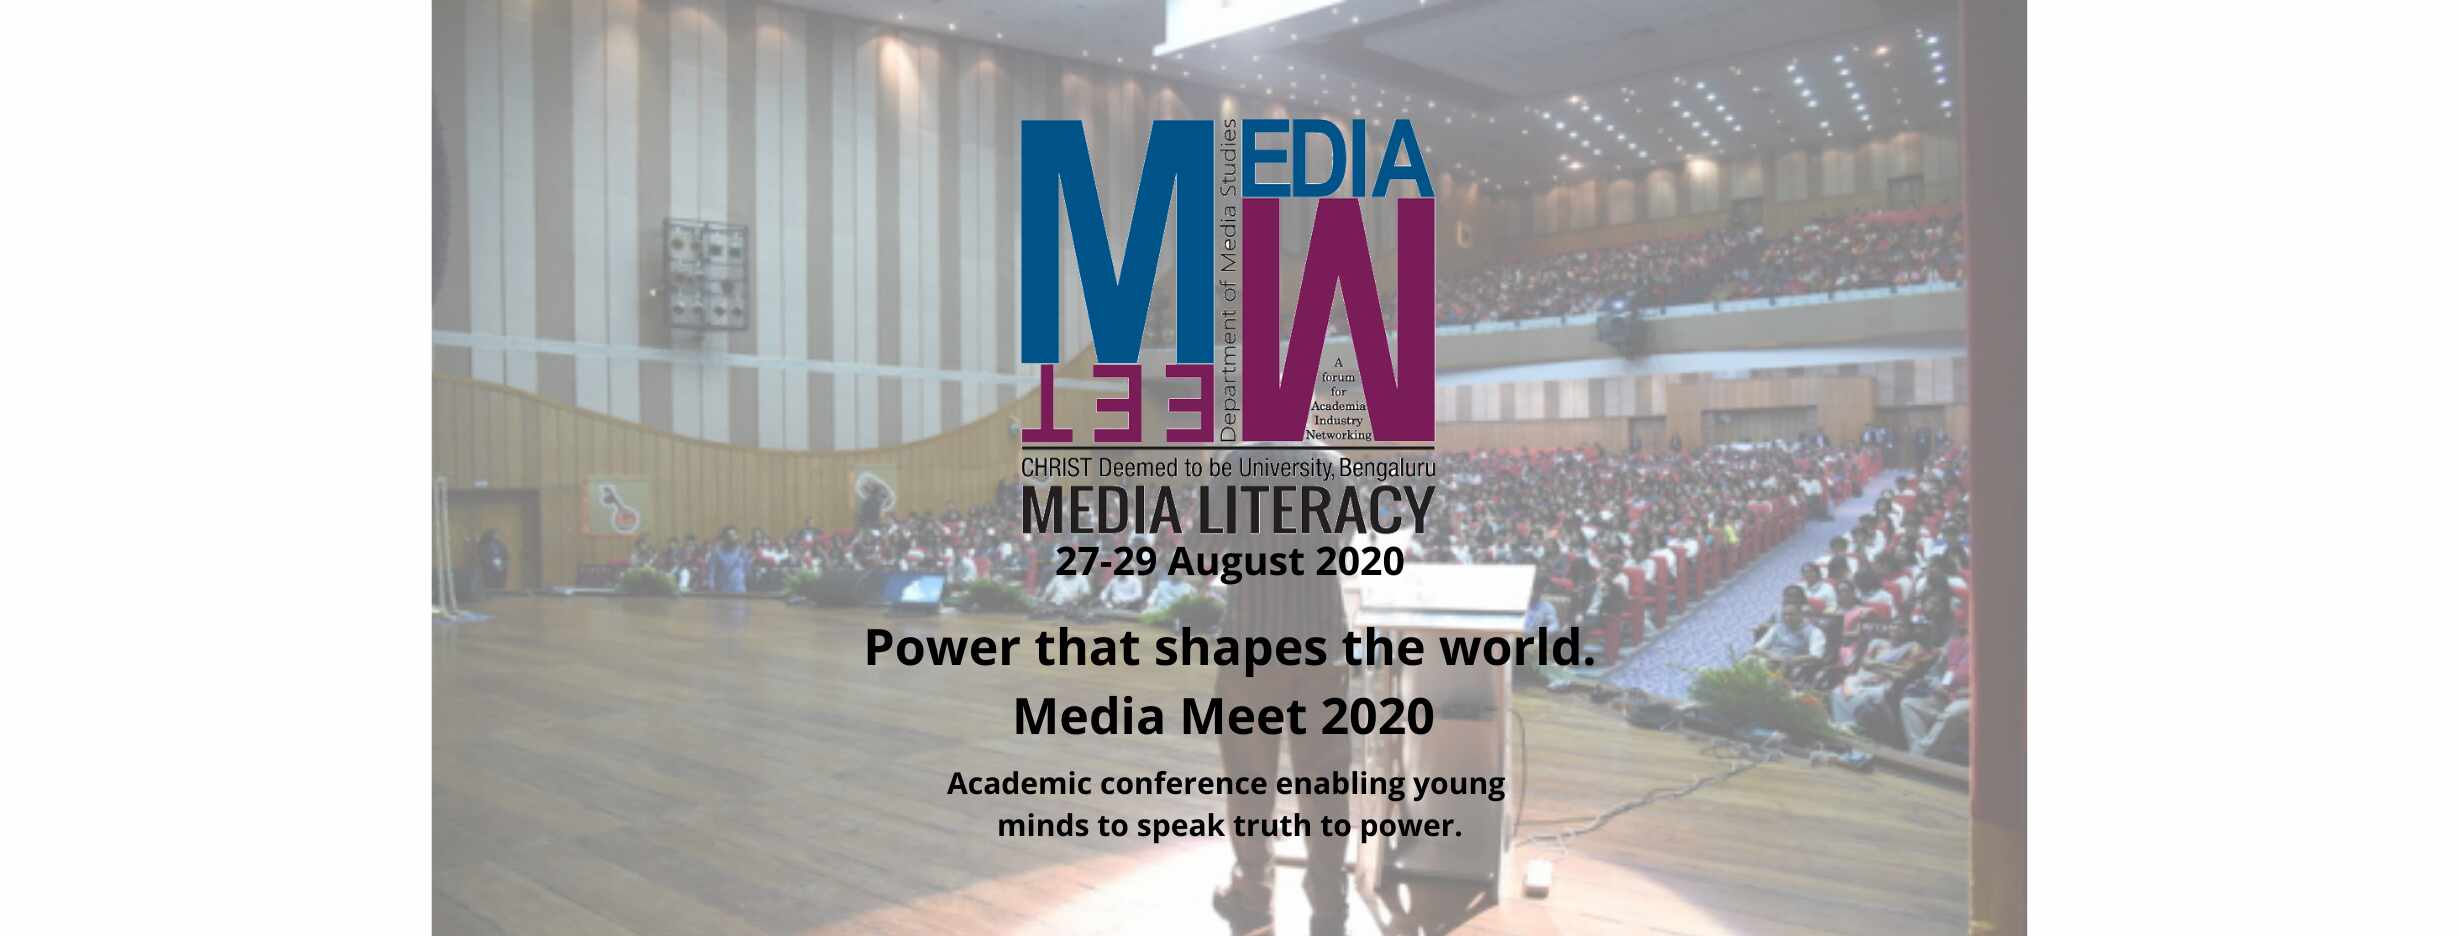 Call for Papers for Media Meet 2020